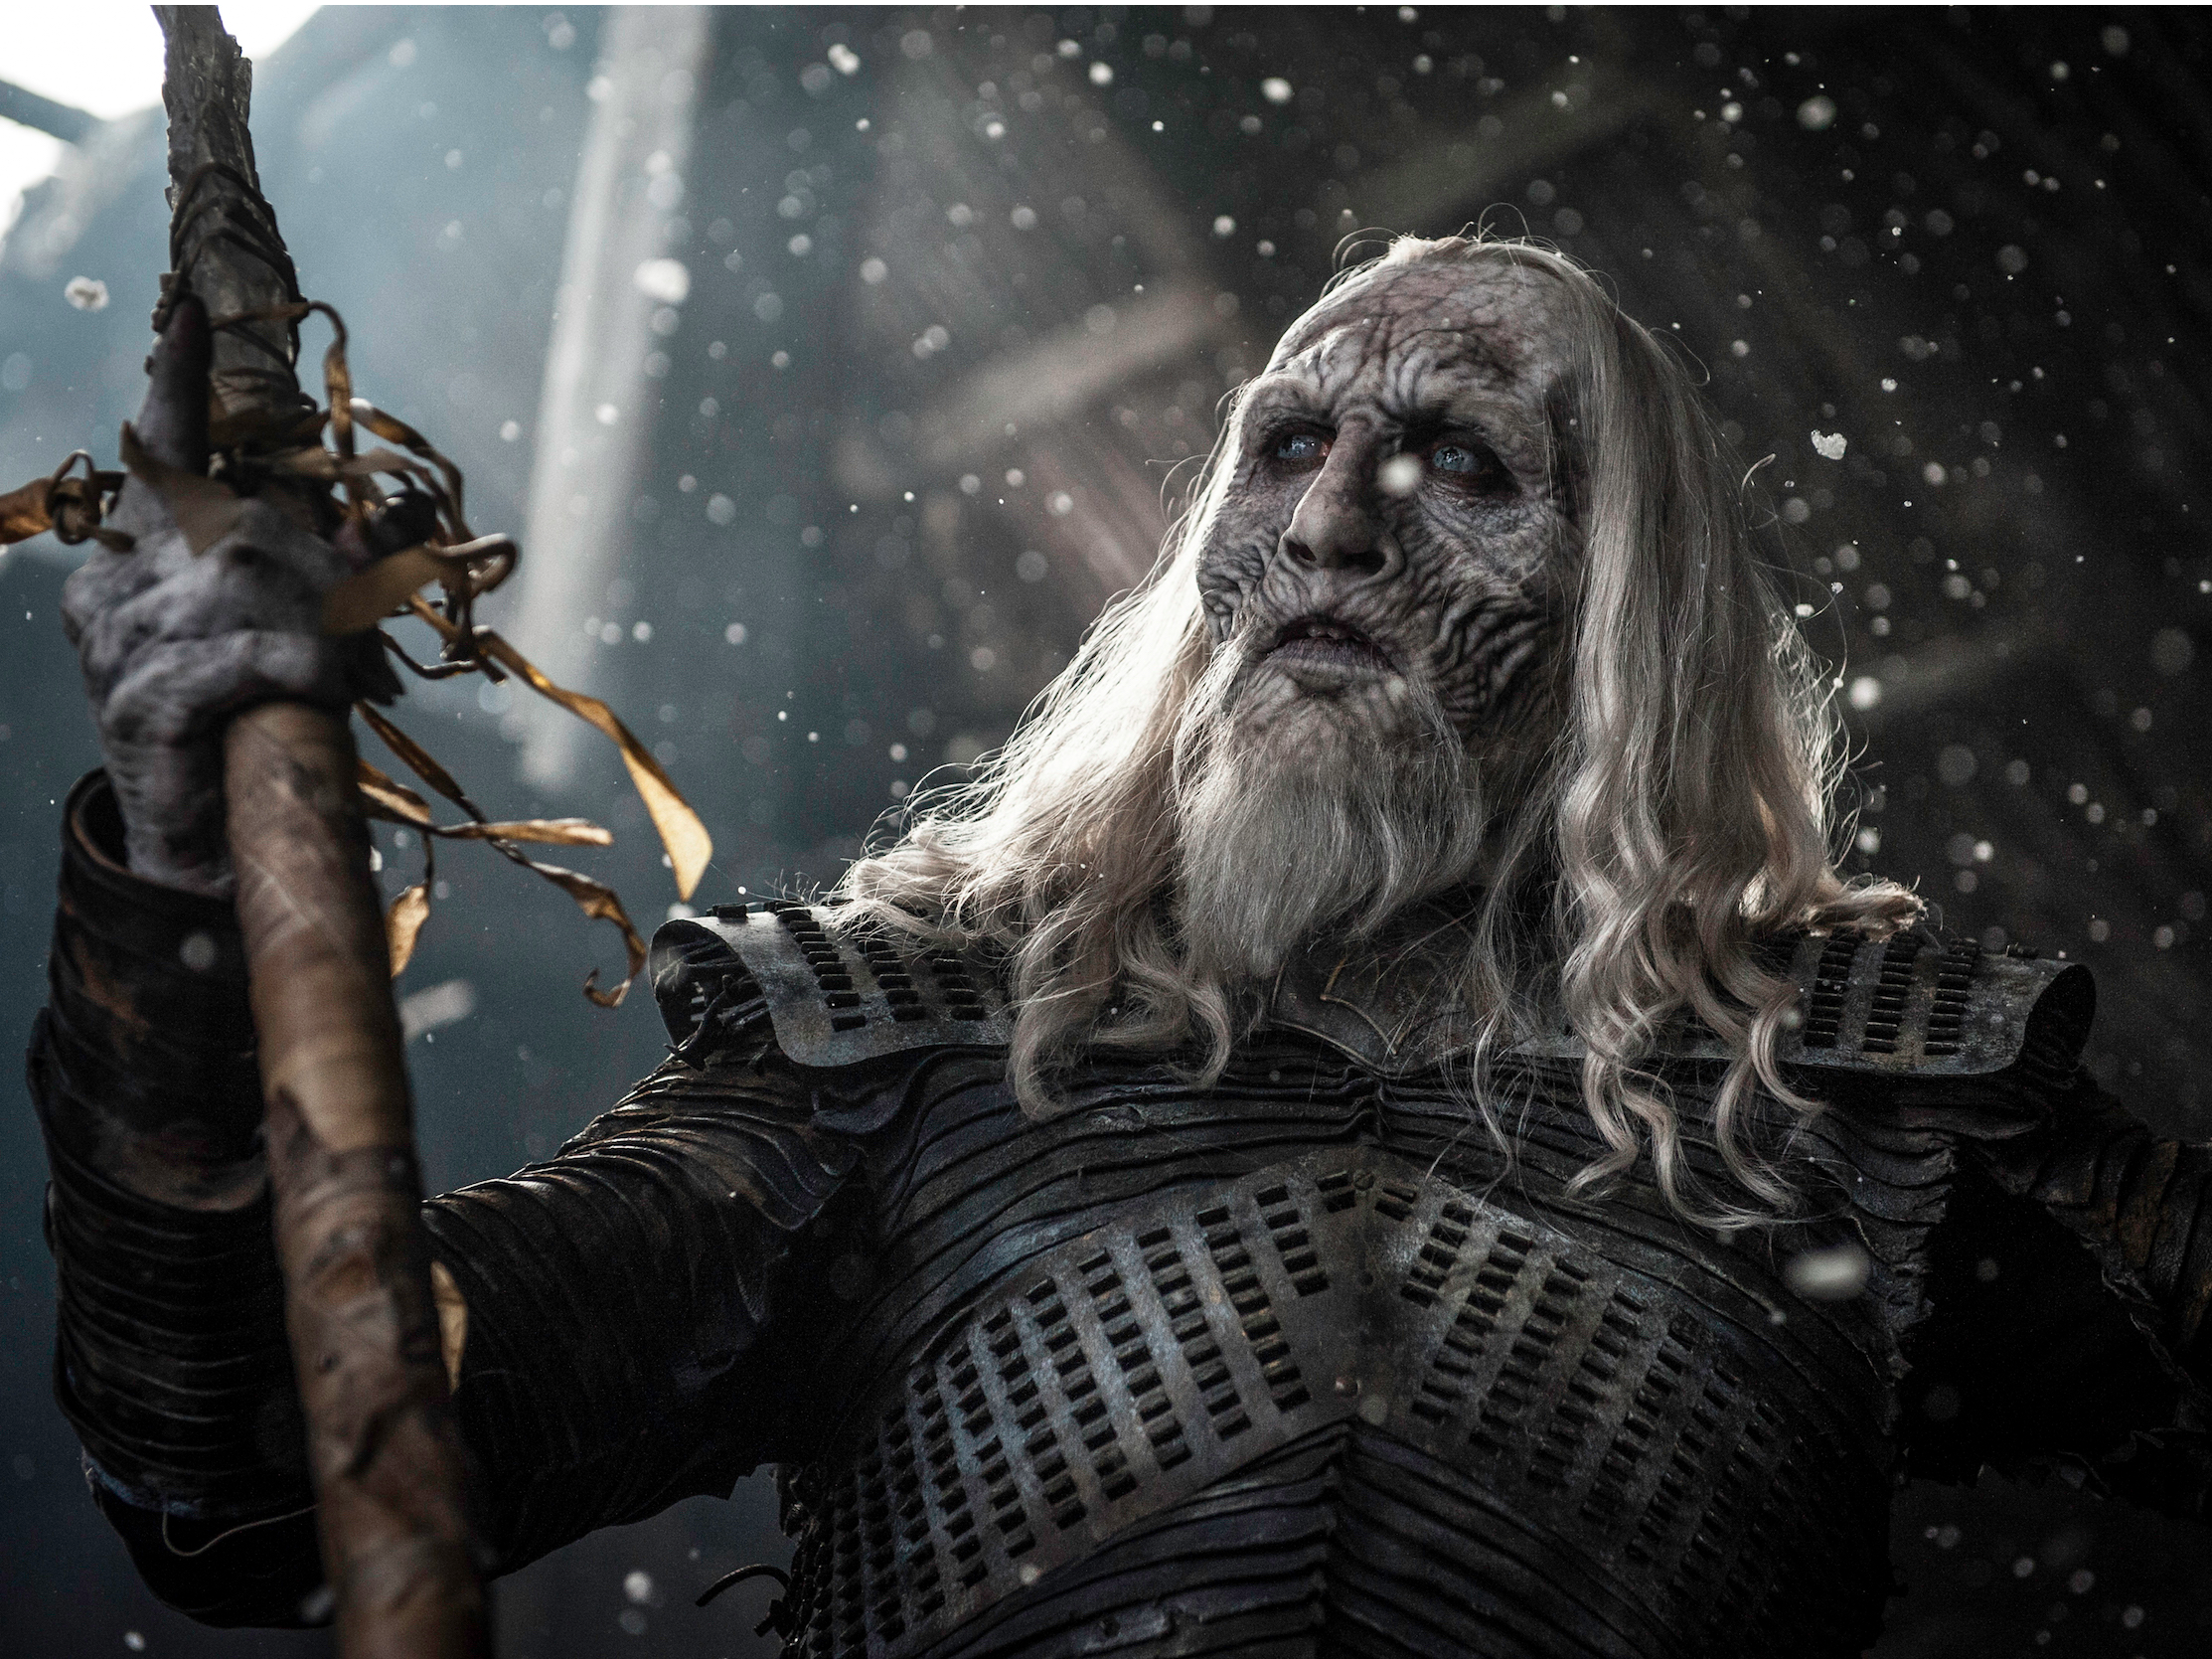 'Game of Thrones' Night King brings storm and clears up